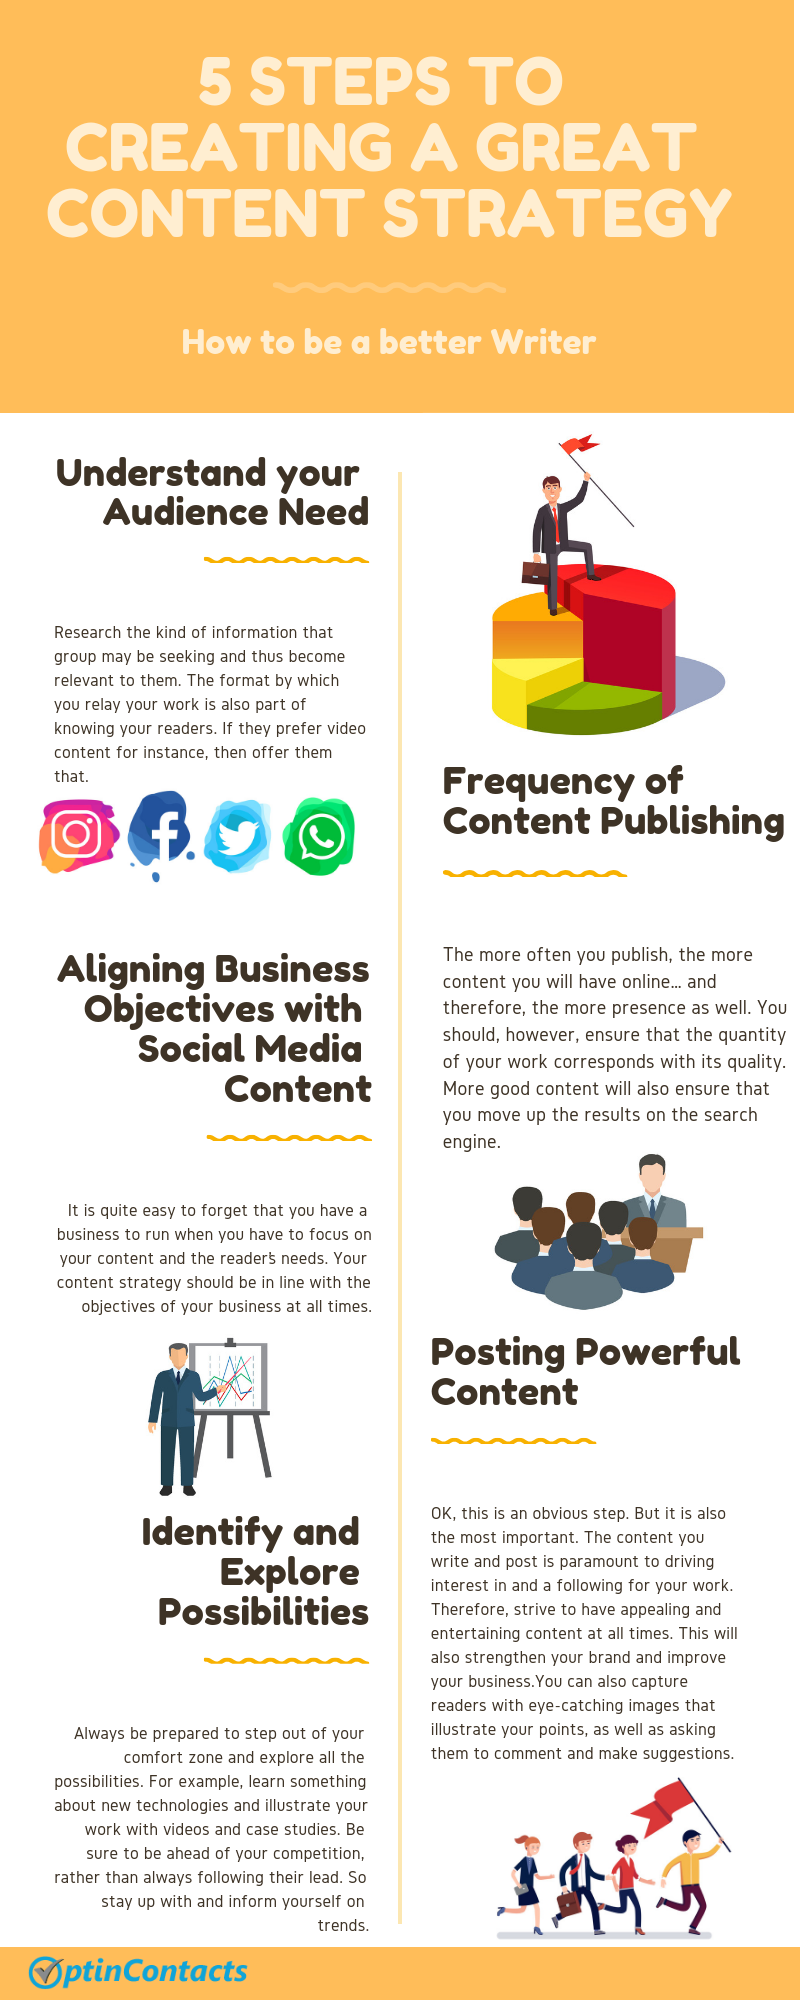 5 STEPS TO CREATING A GREAT CONTENT STRATEGY